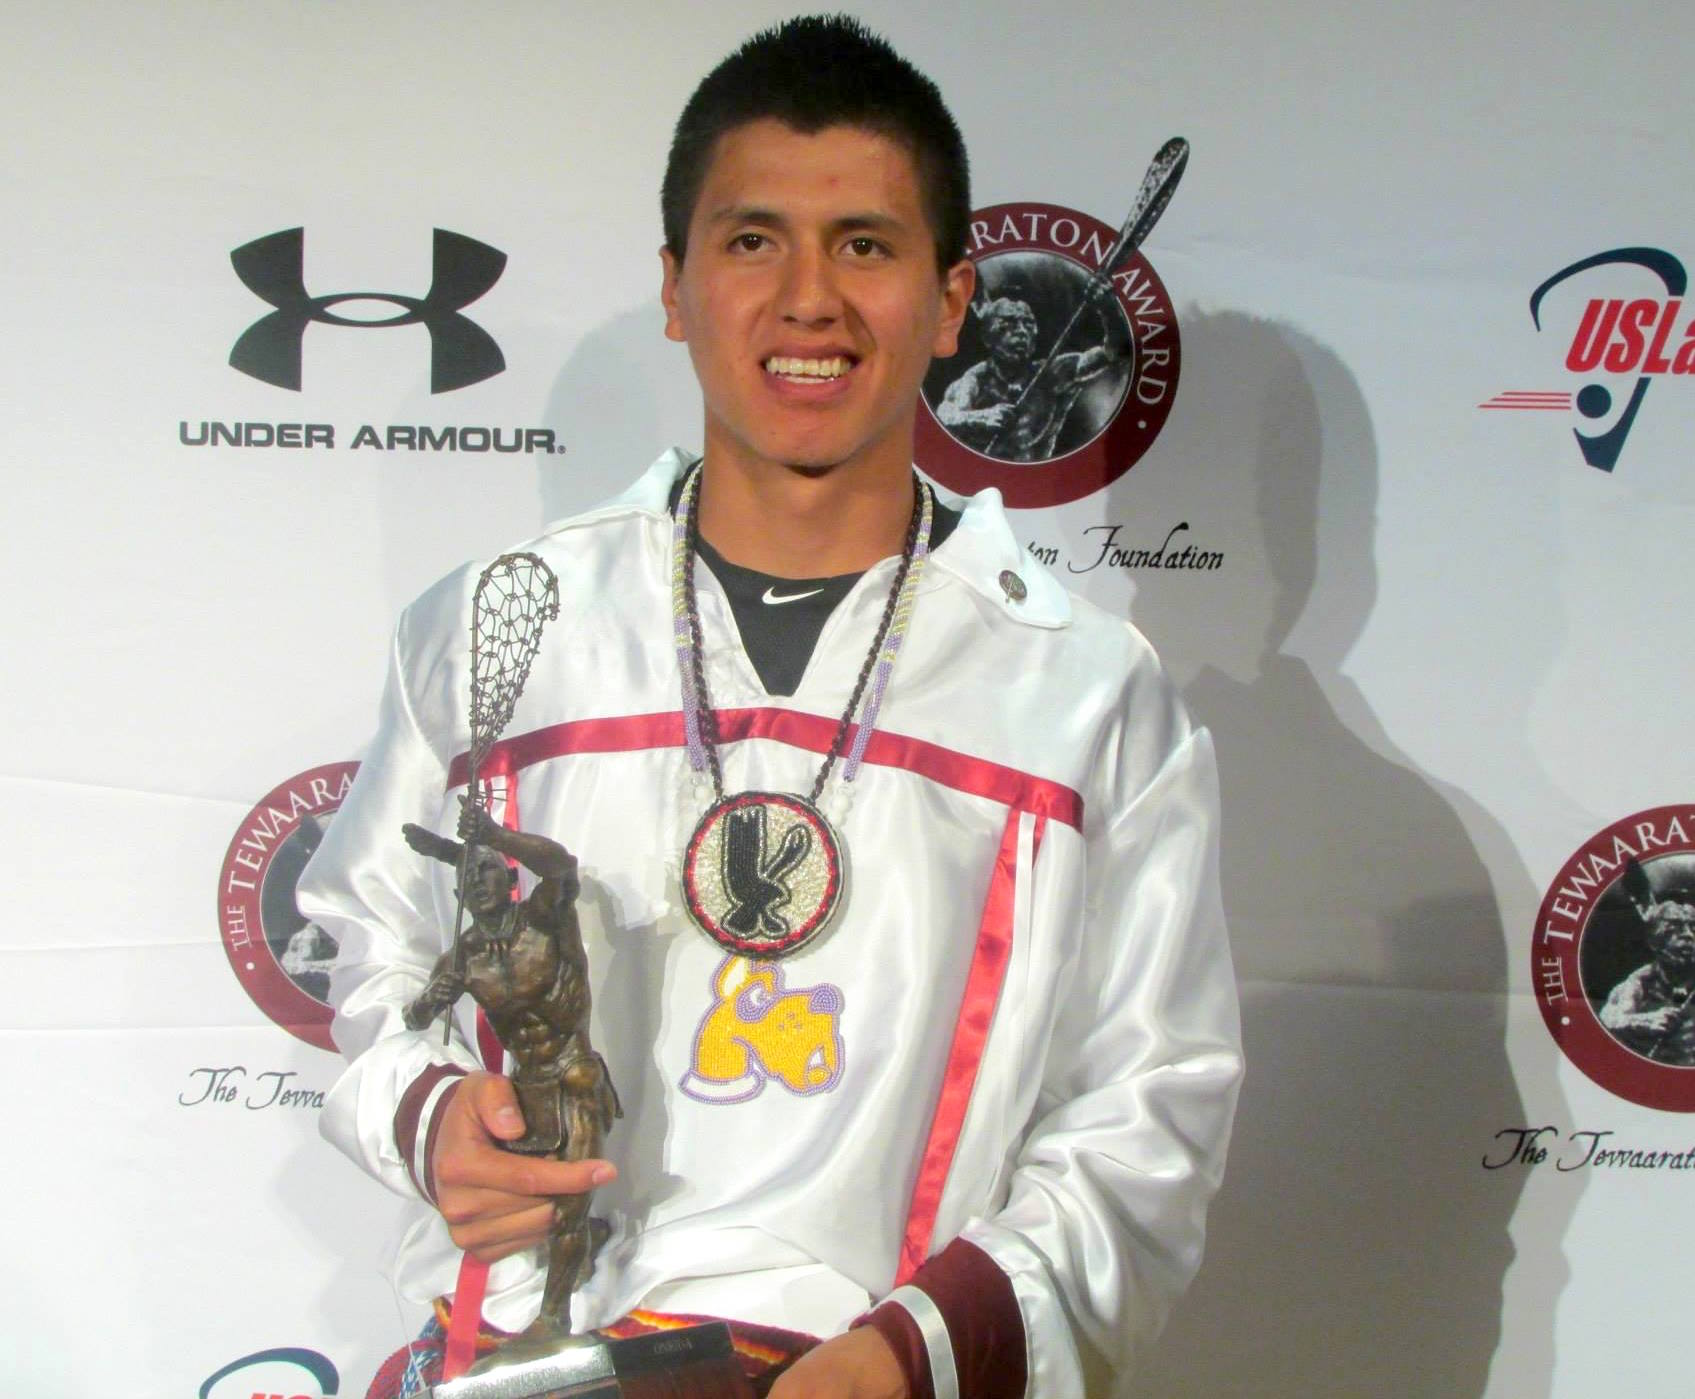 Onondaga Nation player earns top lacrosse award for 2nd year